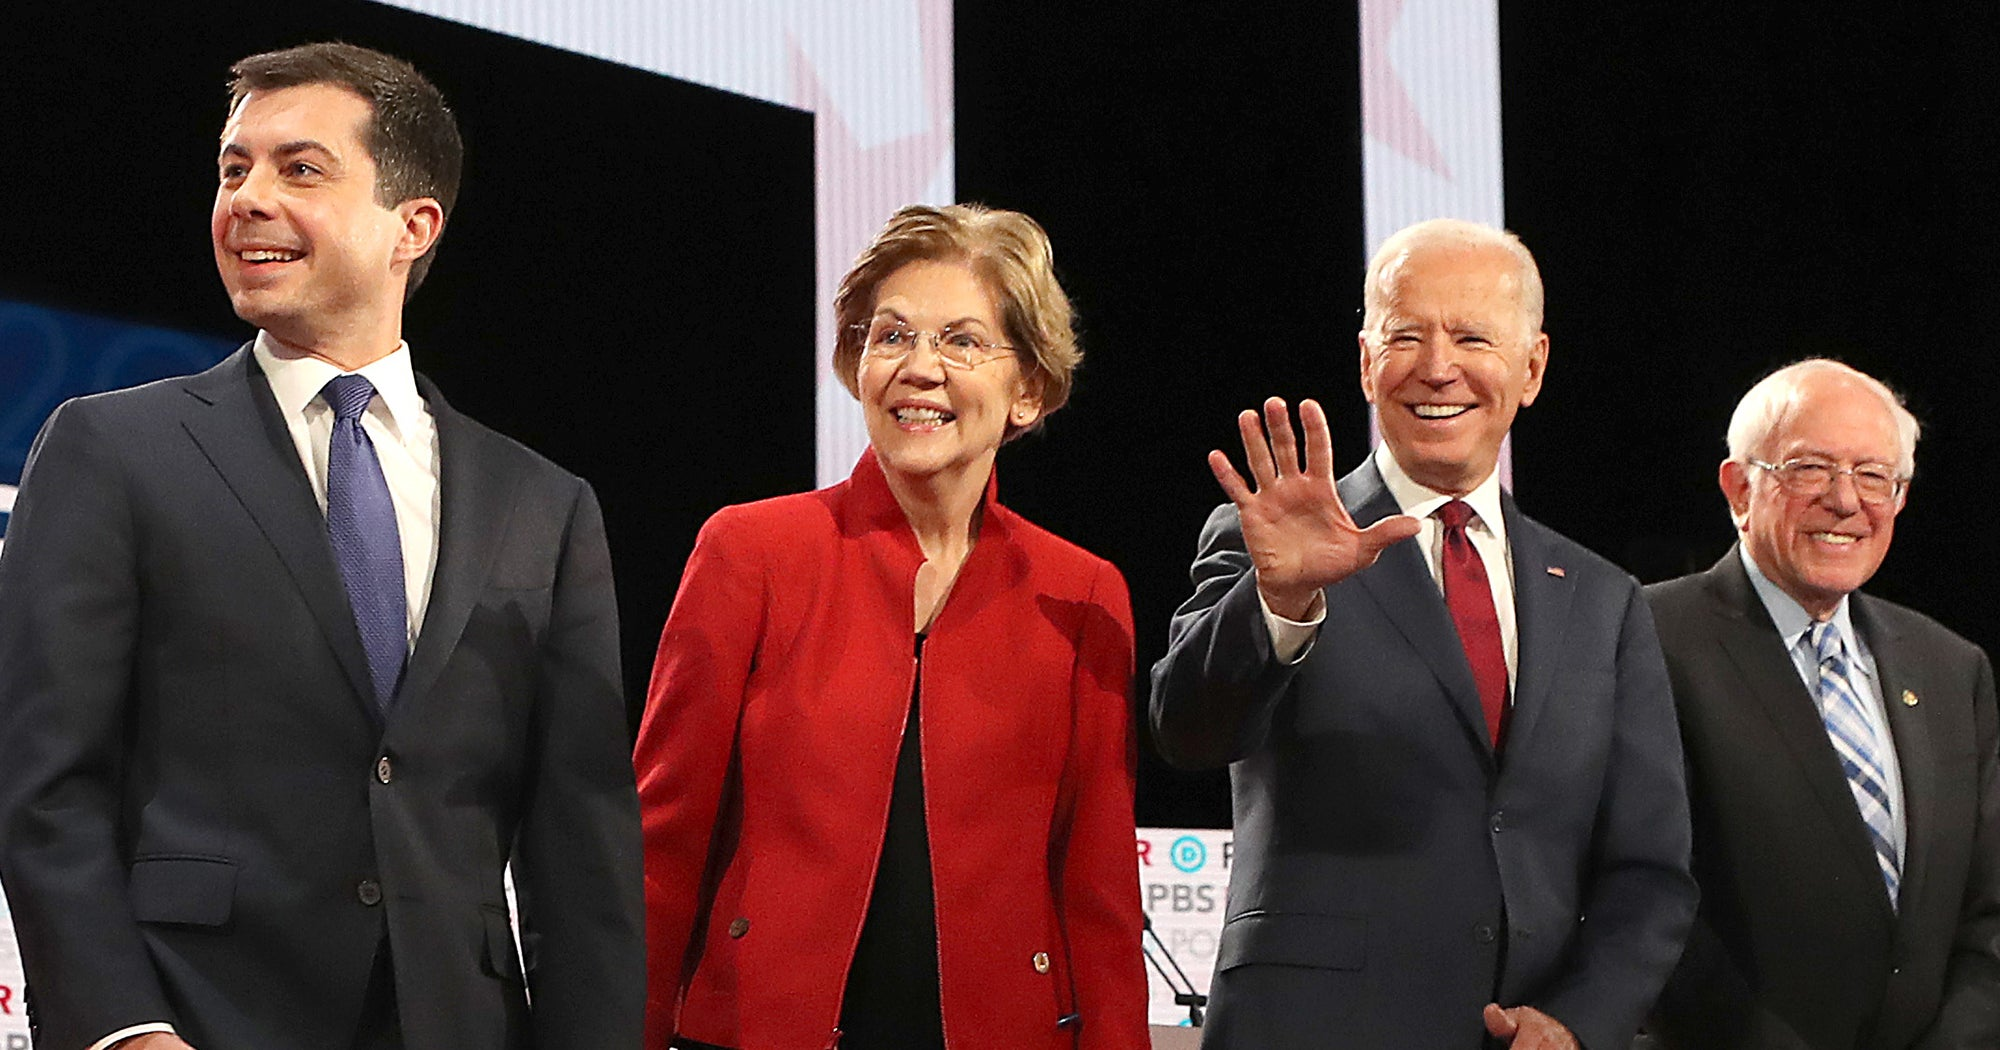 We're Down To 6: Everything Happening In The January Democratic Debate